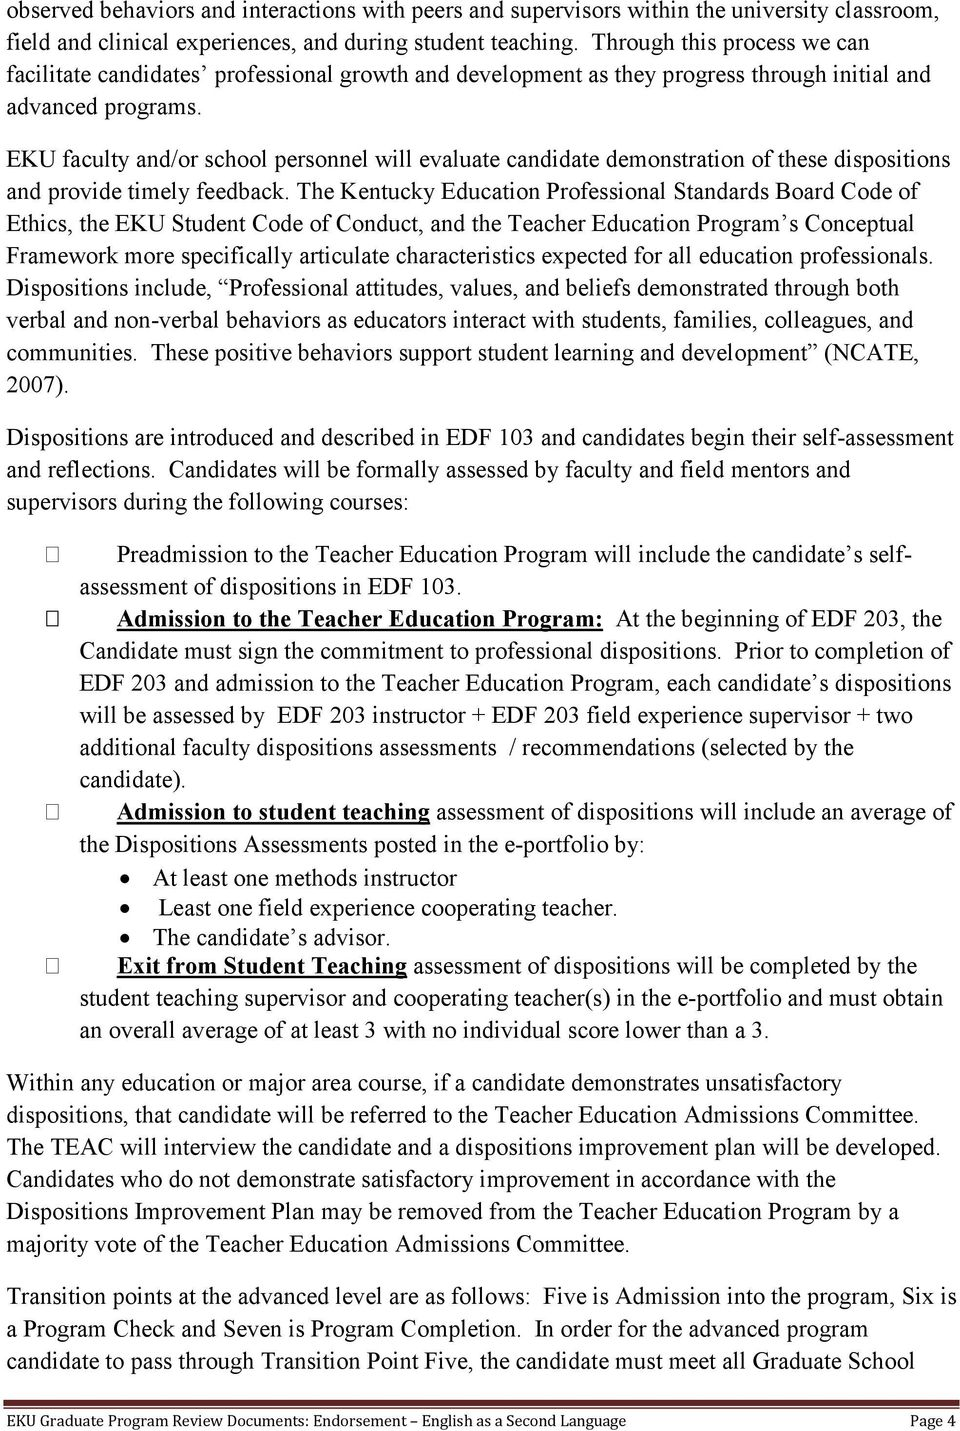 EKU faculty and/or school personnel will evaluate candidate demonstration of these dispositions and provide timely feedback.